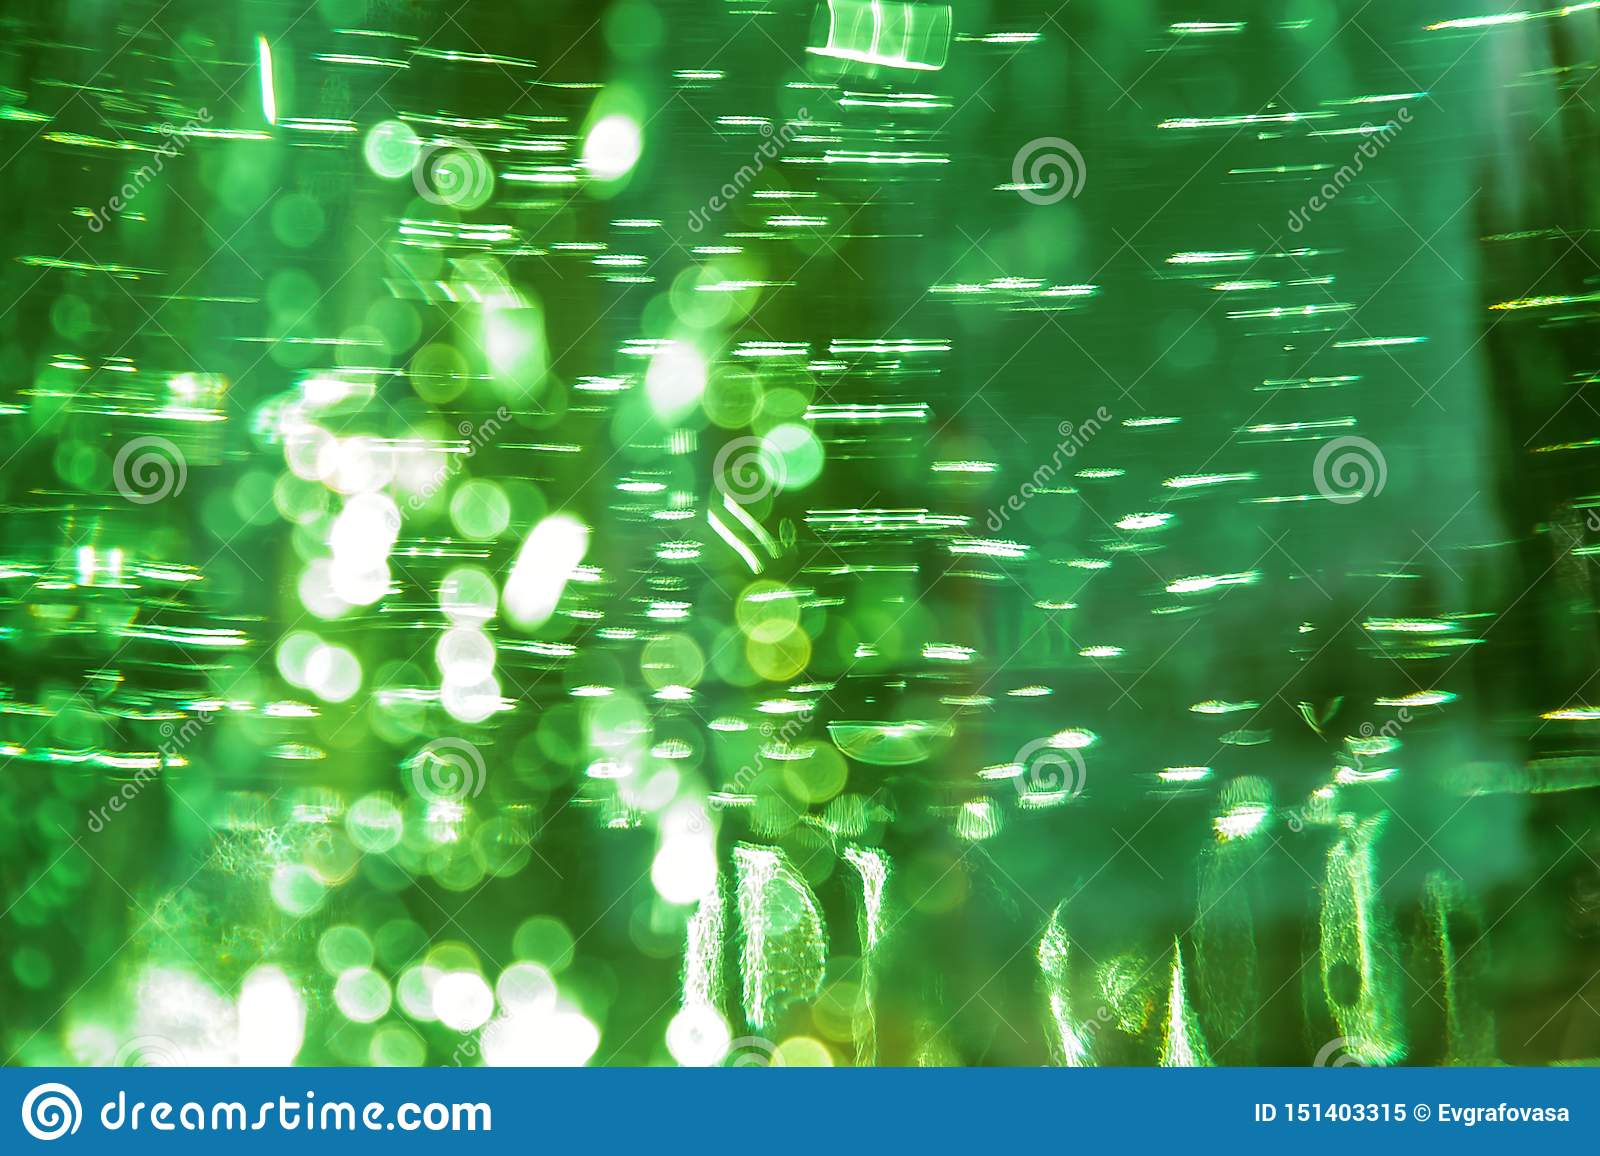 Abstract bright defocused ultra green color shiny background with water texture with bubbles with bokeh effect